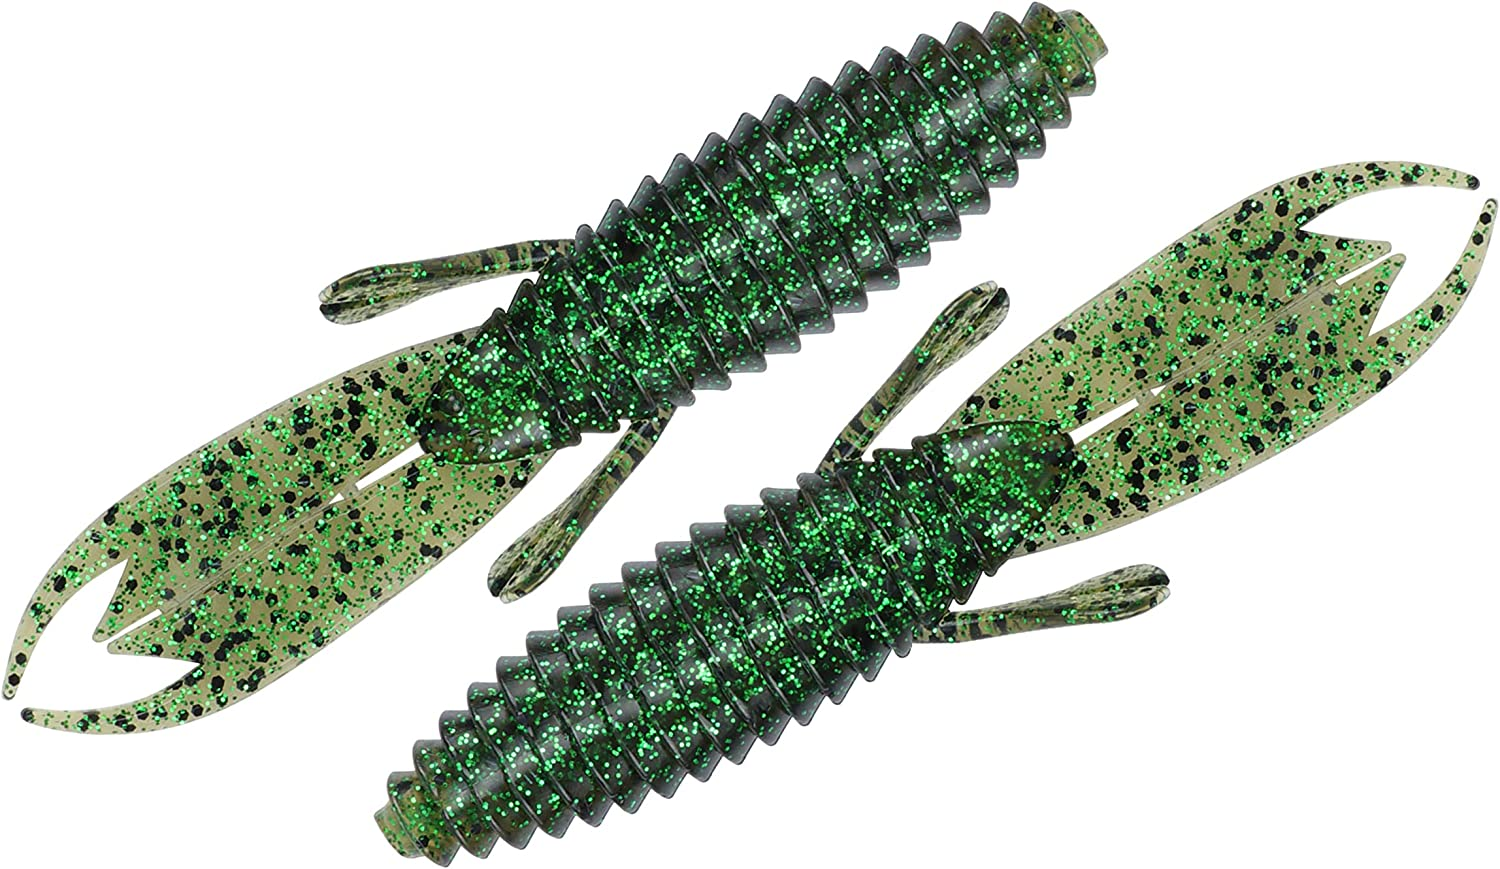 RUNCL Anchor Box - Craw Baits, Creature Baits, 4/4.2in Soft Fishing Lures 15/20pcs - Oversized Pinchers, Weedless Design, Natural Oils, Lifelike Swimming Actions, Proven Colors - Fishing Baits